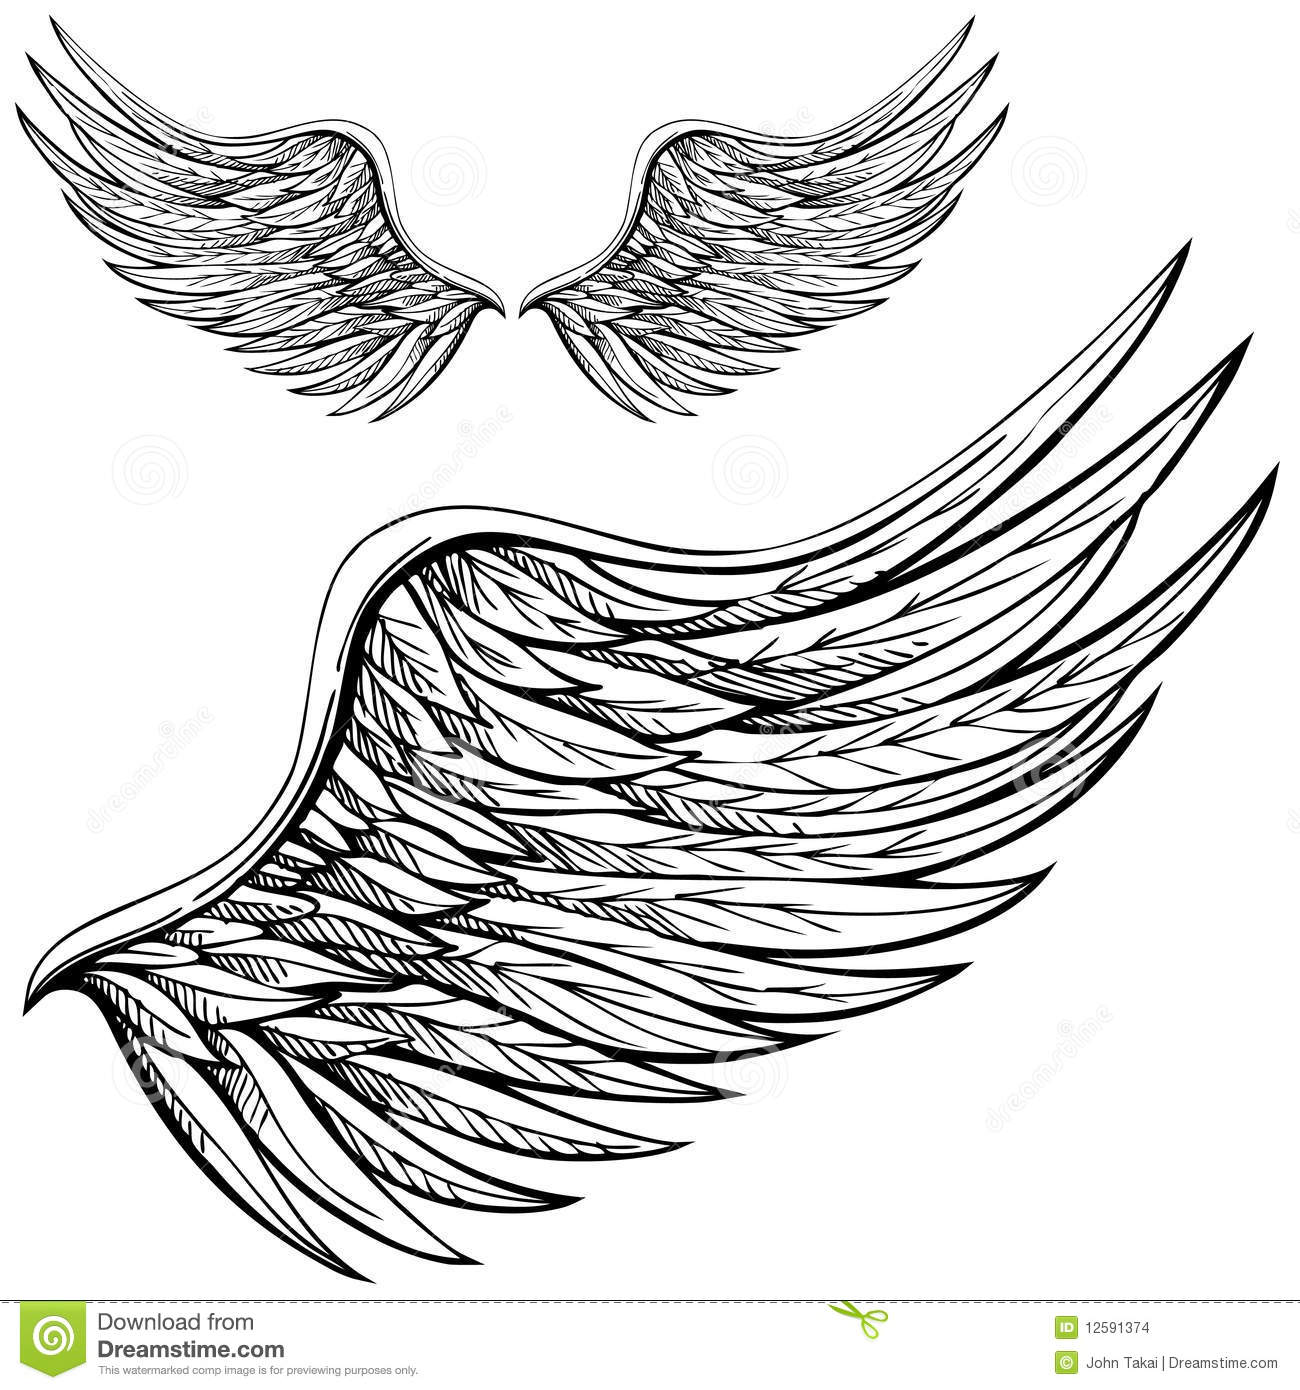 Cartoon Angel Wings In Black And White  Drawn By Hand